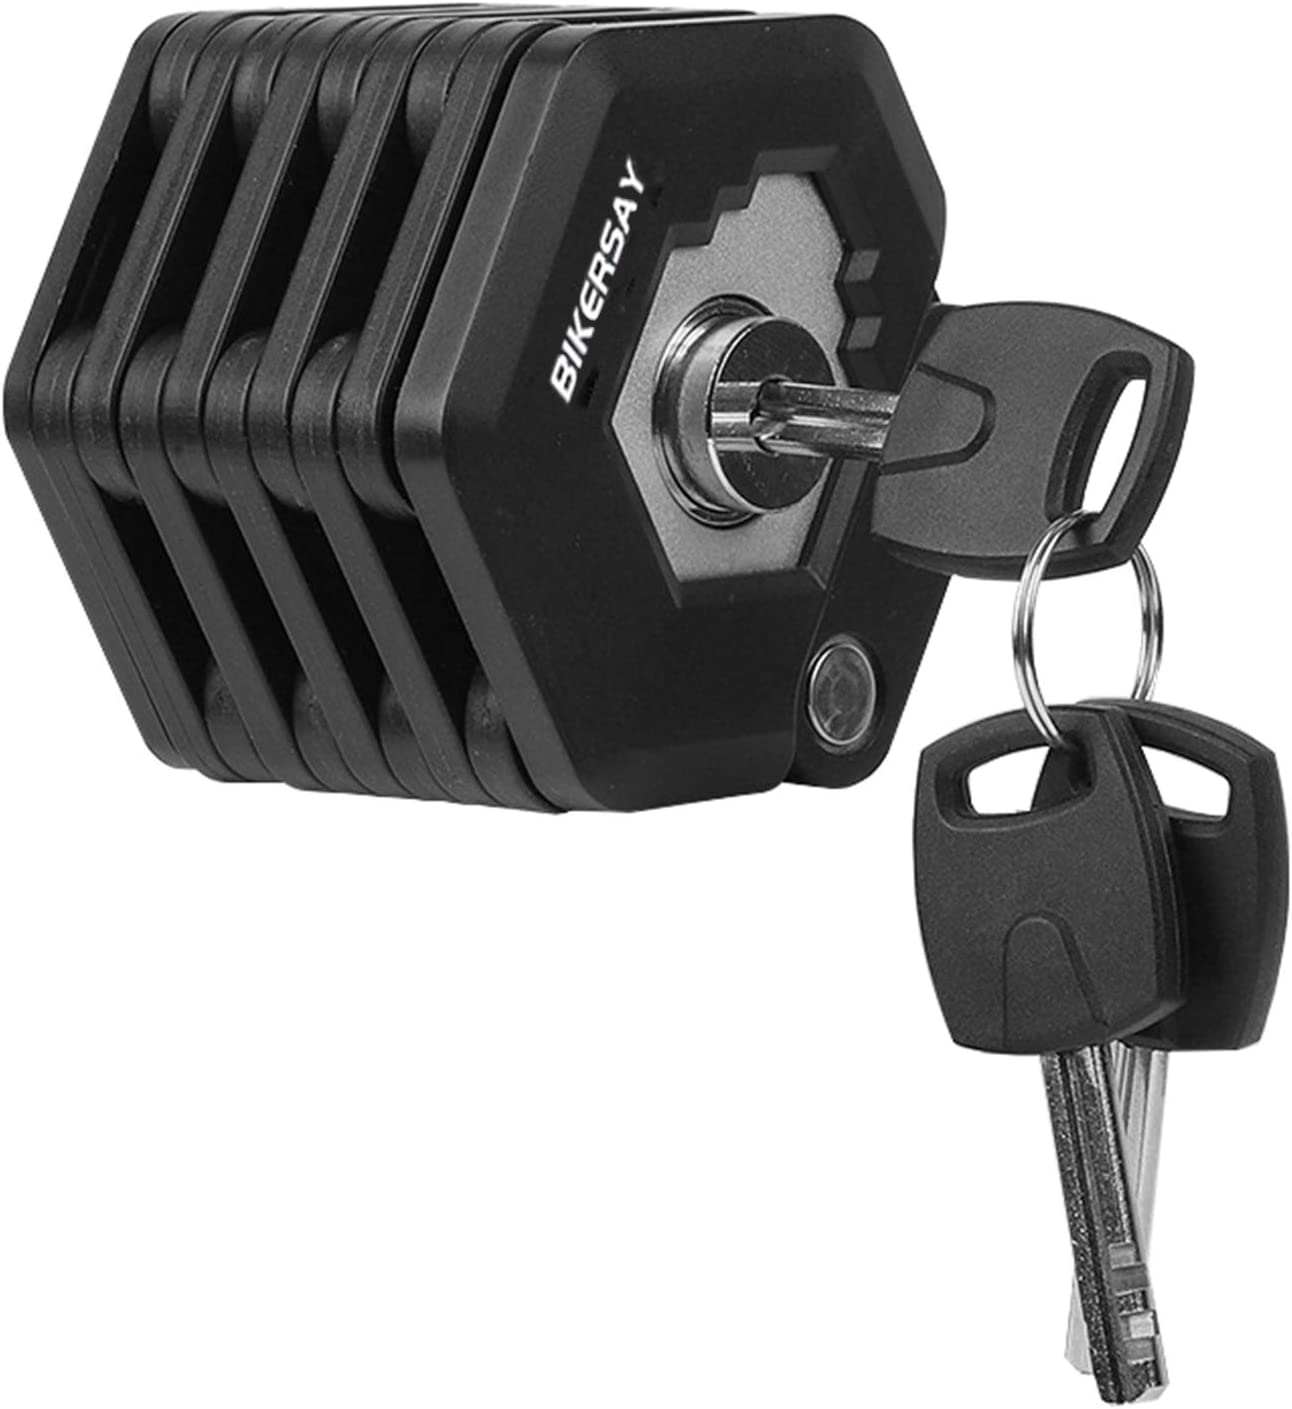 Bike Lock Security Anti-theft Bicycle Chain Lock-No Keys Required Outdoor